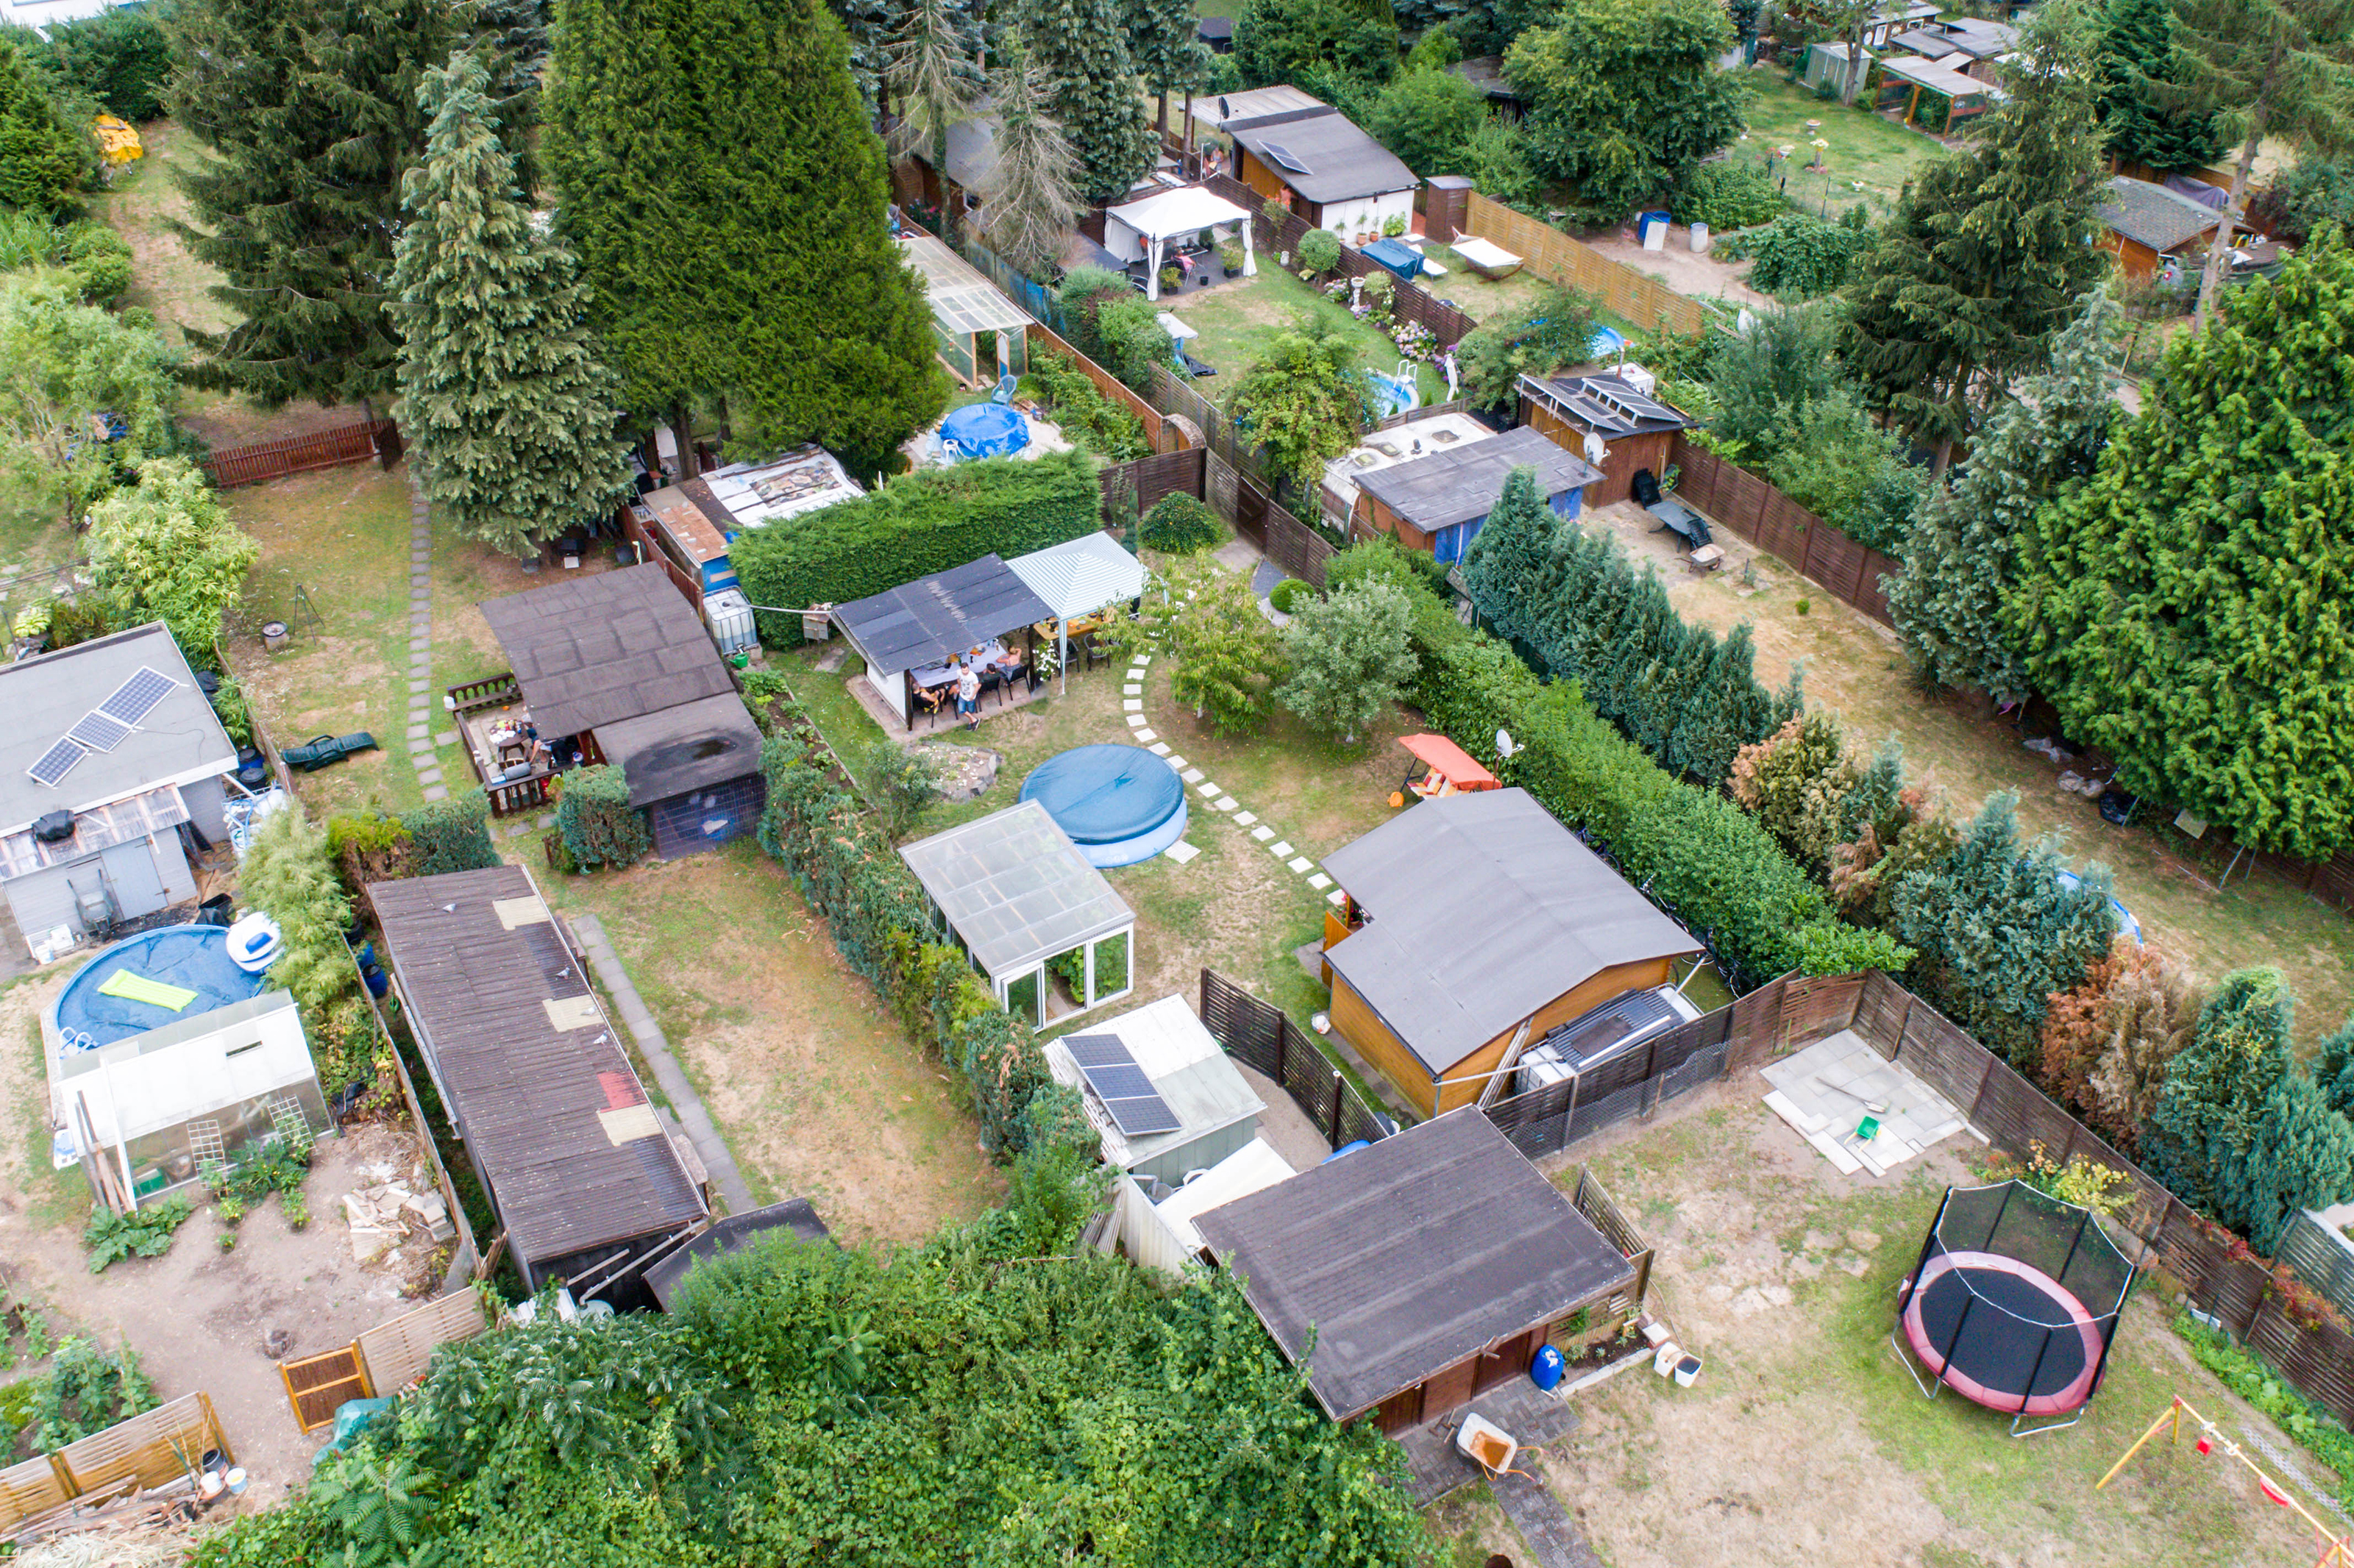 Aerial photo with the drone, a new build-up plot with single houses and gardens, narrow neighbourhood.